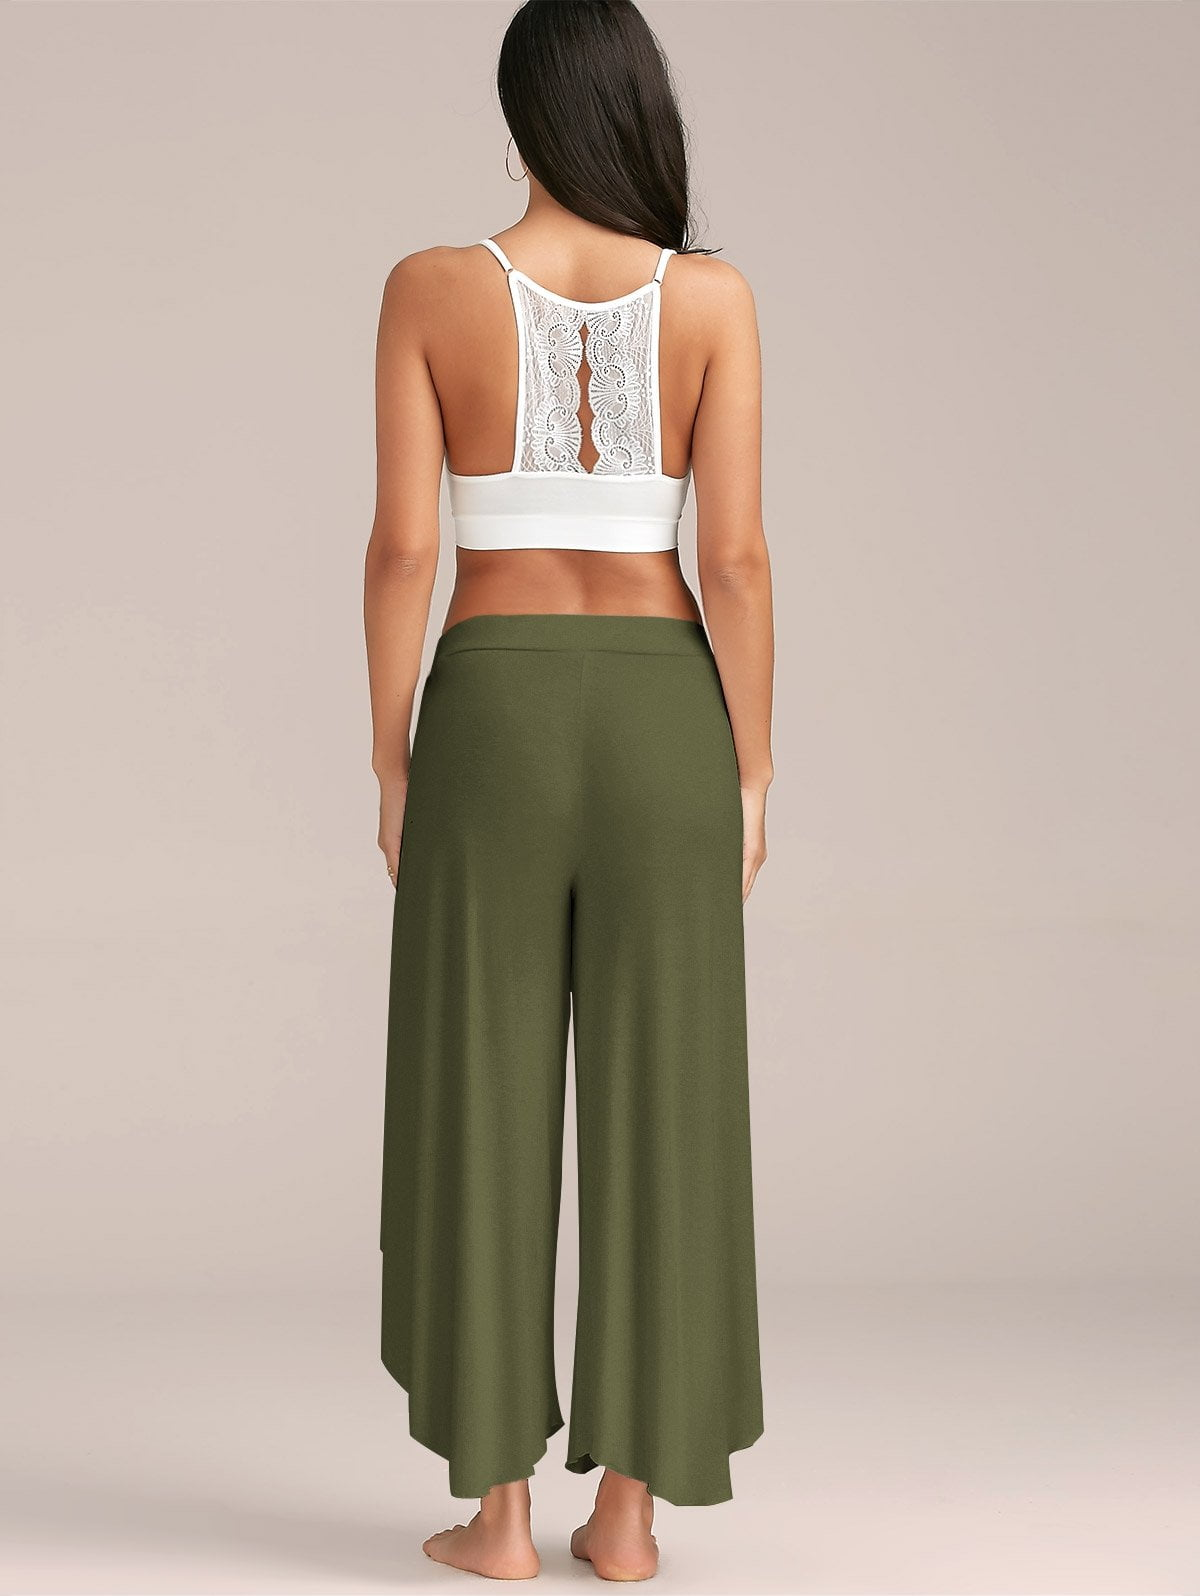 High Slit Flowy Layered Palazzo Pants-PANTS-SheSimplyShops